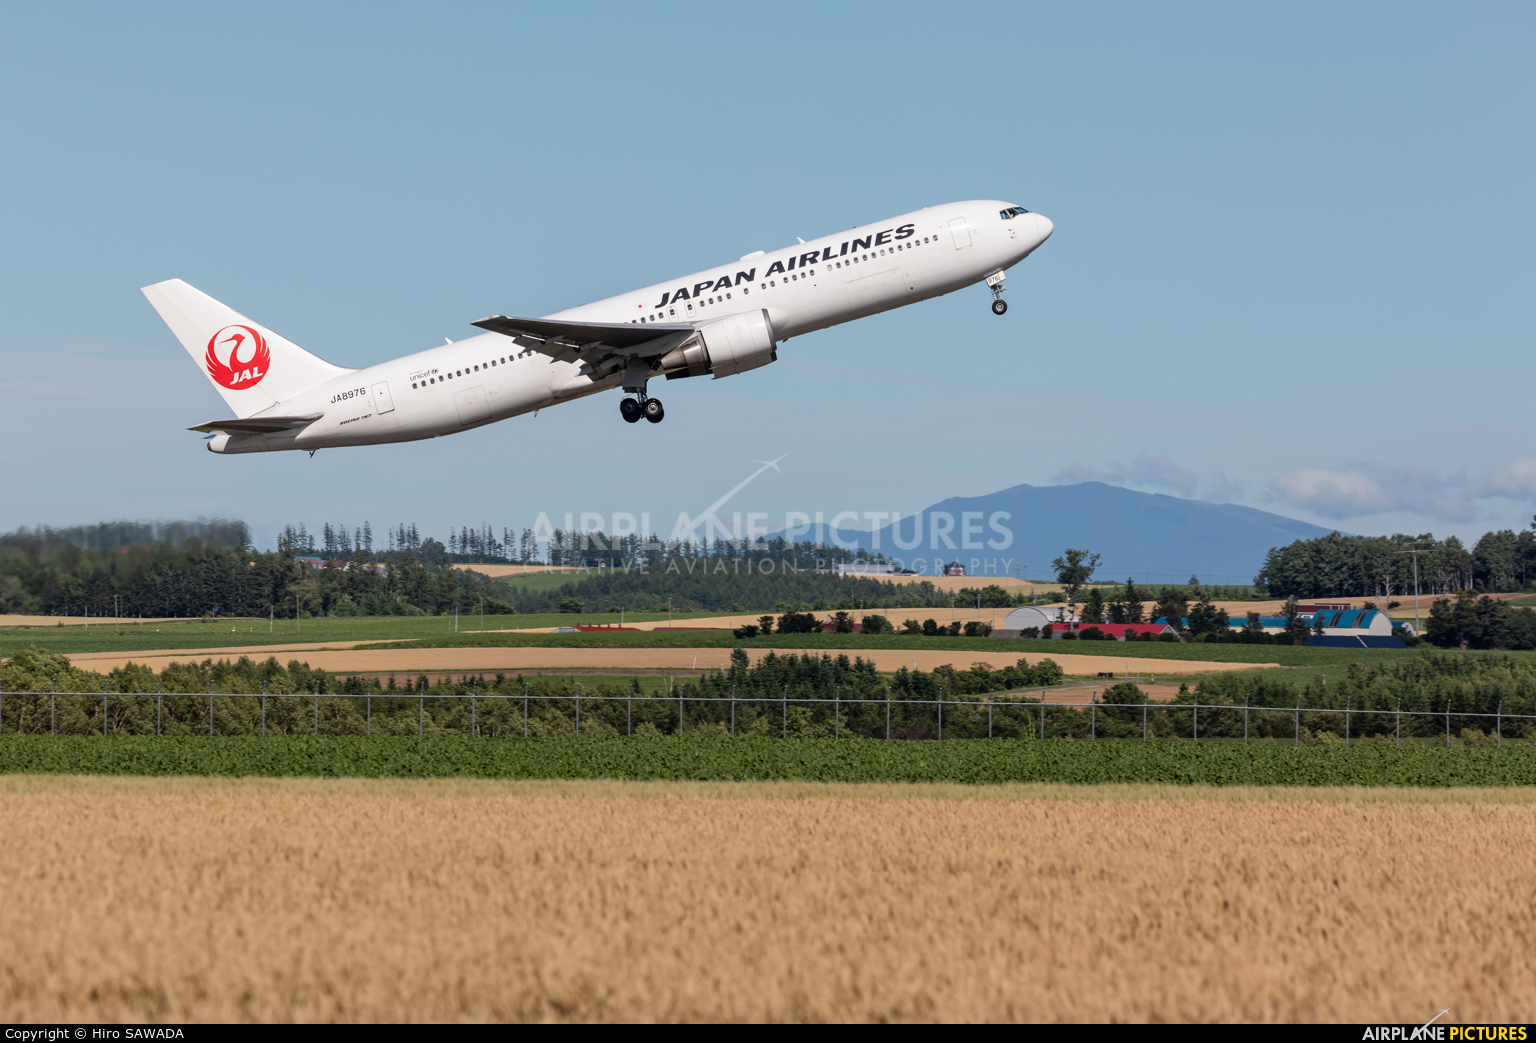 JAL - Japan Airlines JA8976 aircraft at Memanbetsu